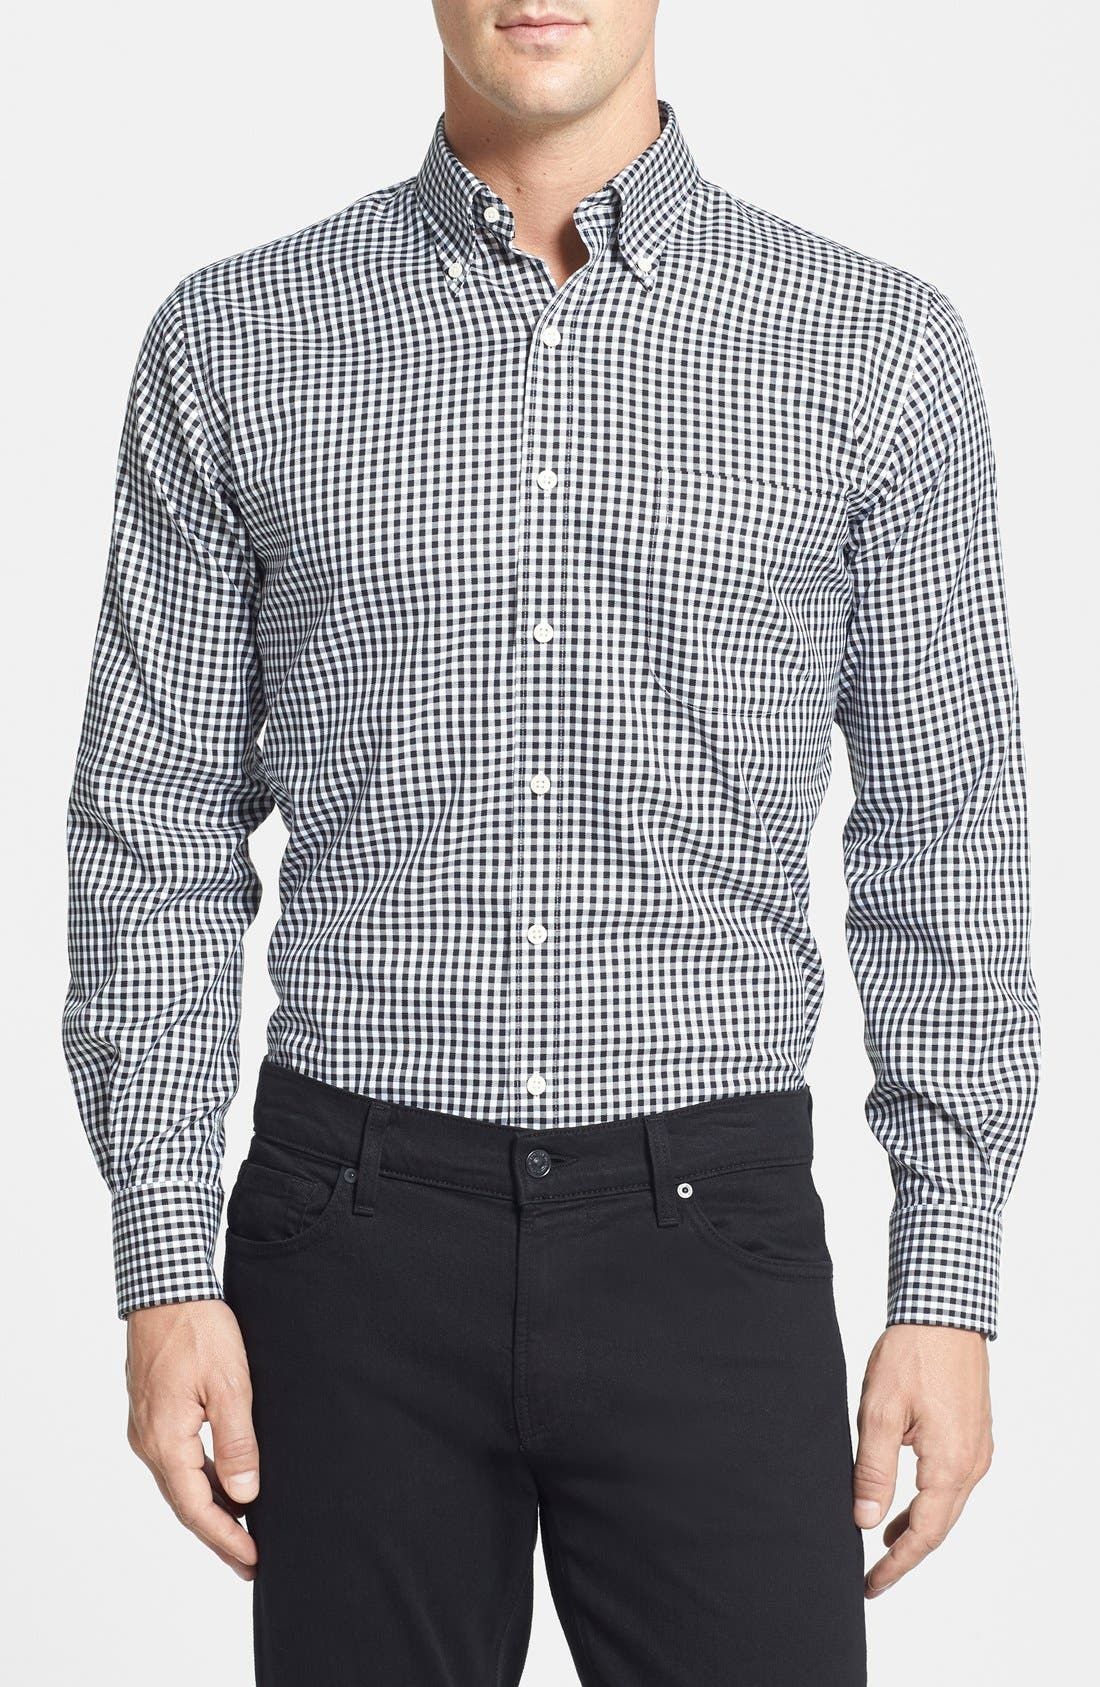 'Nanoluxe' Regular Fit Wrinkle Resistant Twill Check Sport Shirt,                         Main,                         color, 001